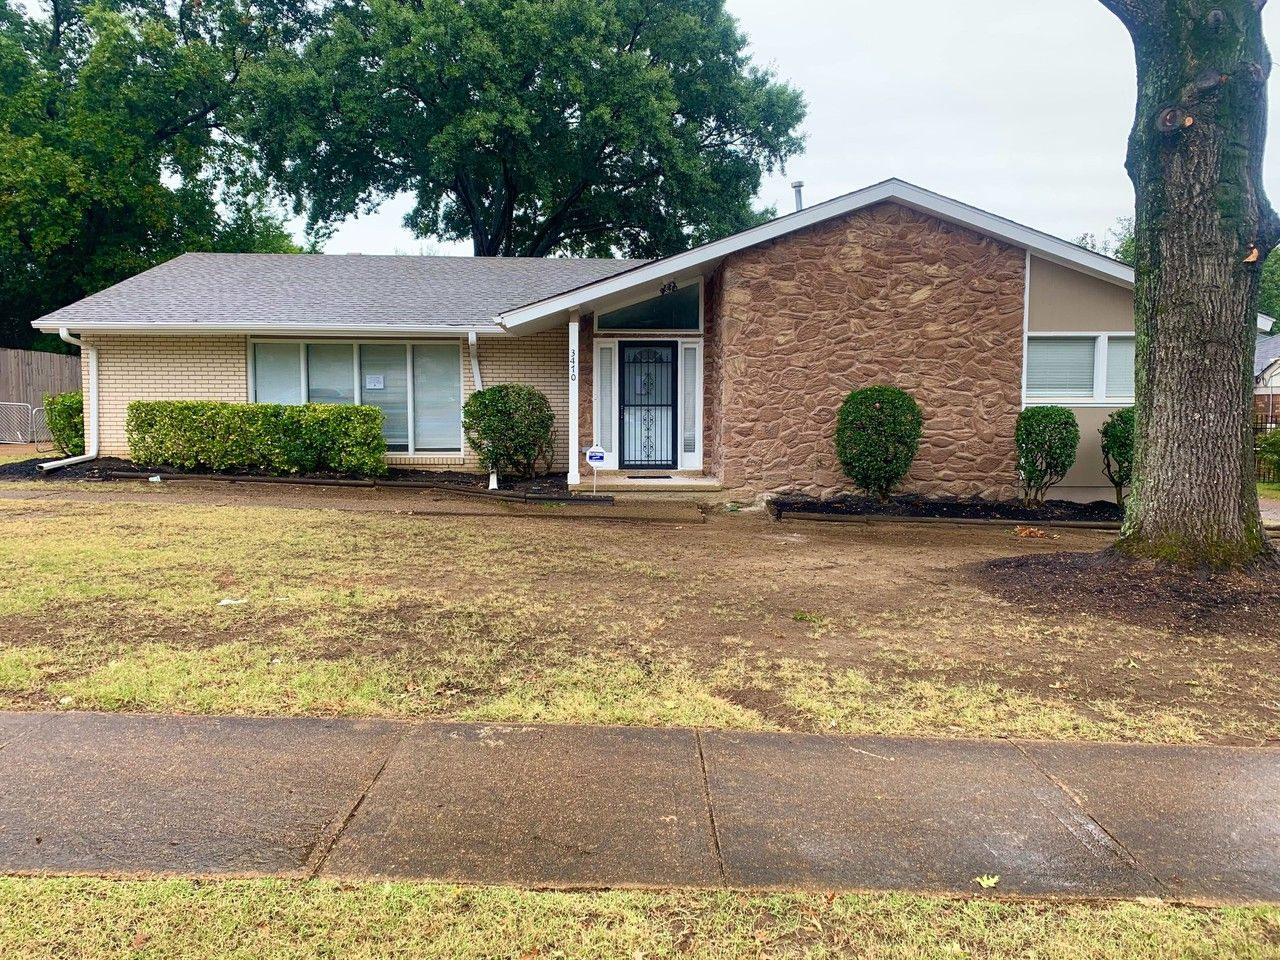 3470 kirby pkwy memphis tn 38115 4 bedroom house for